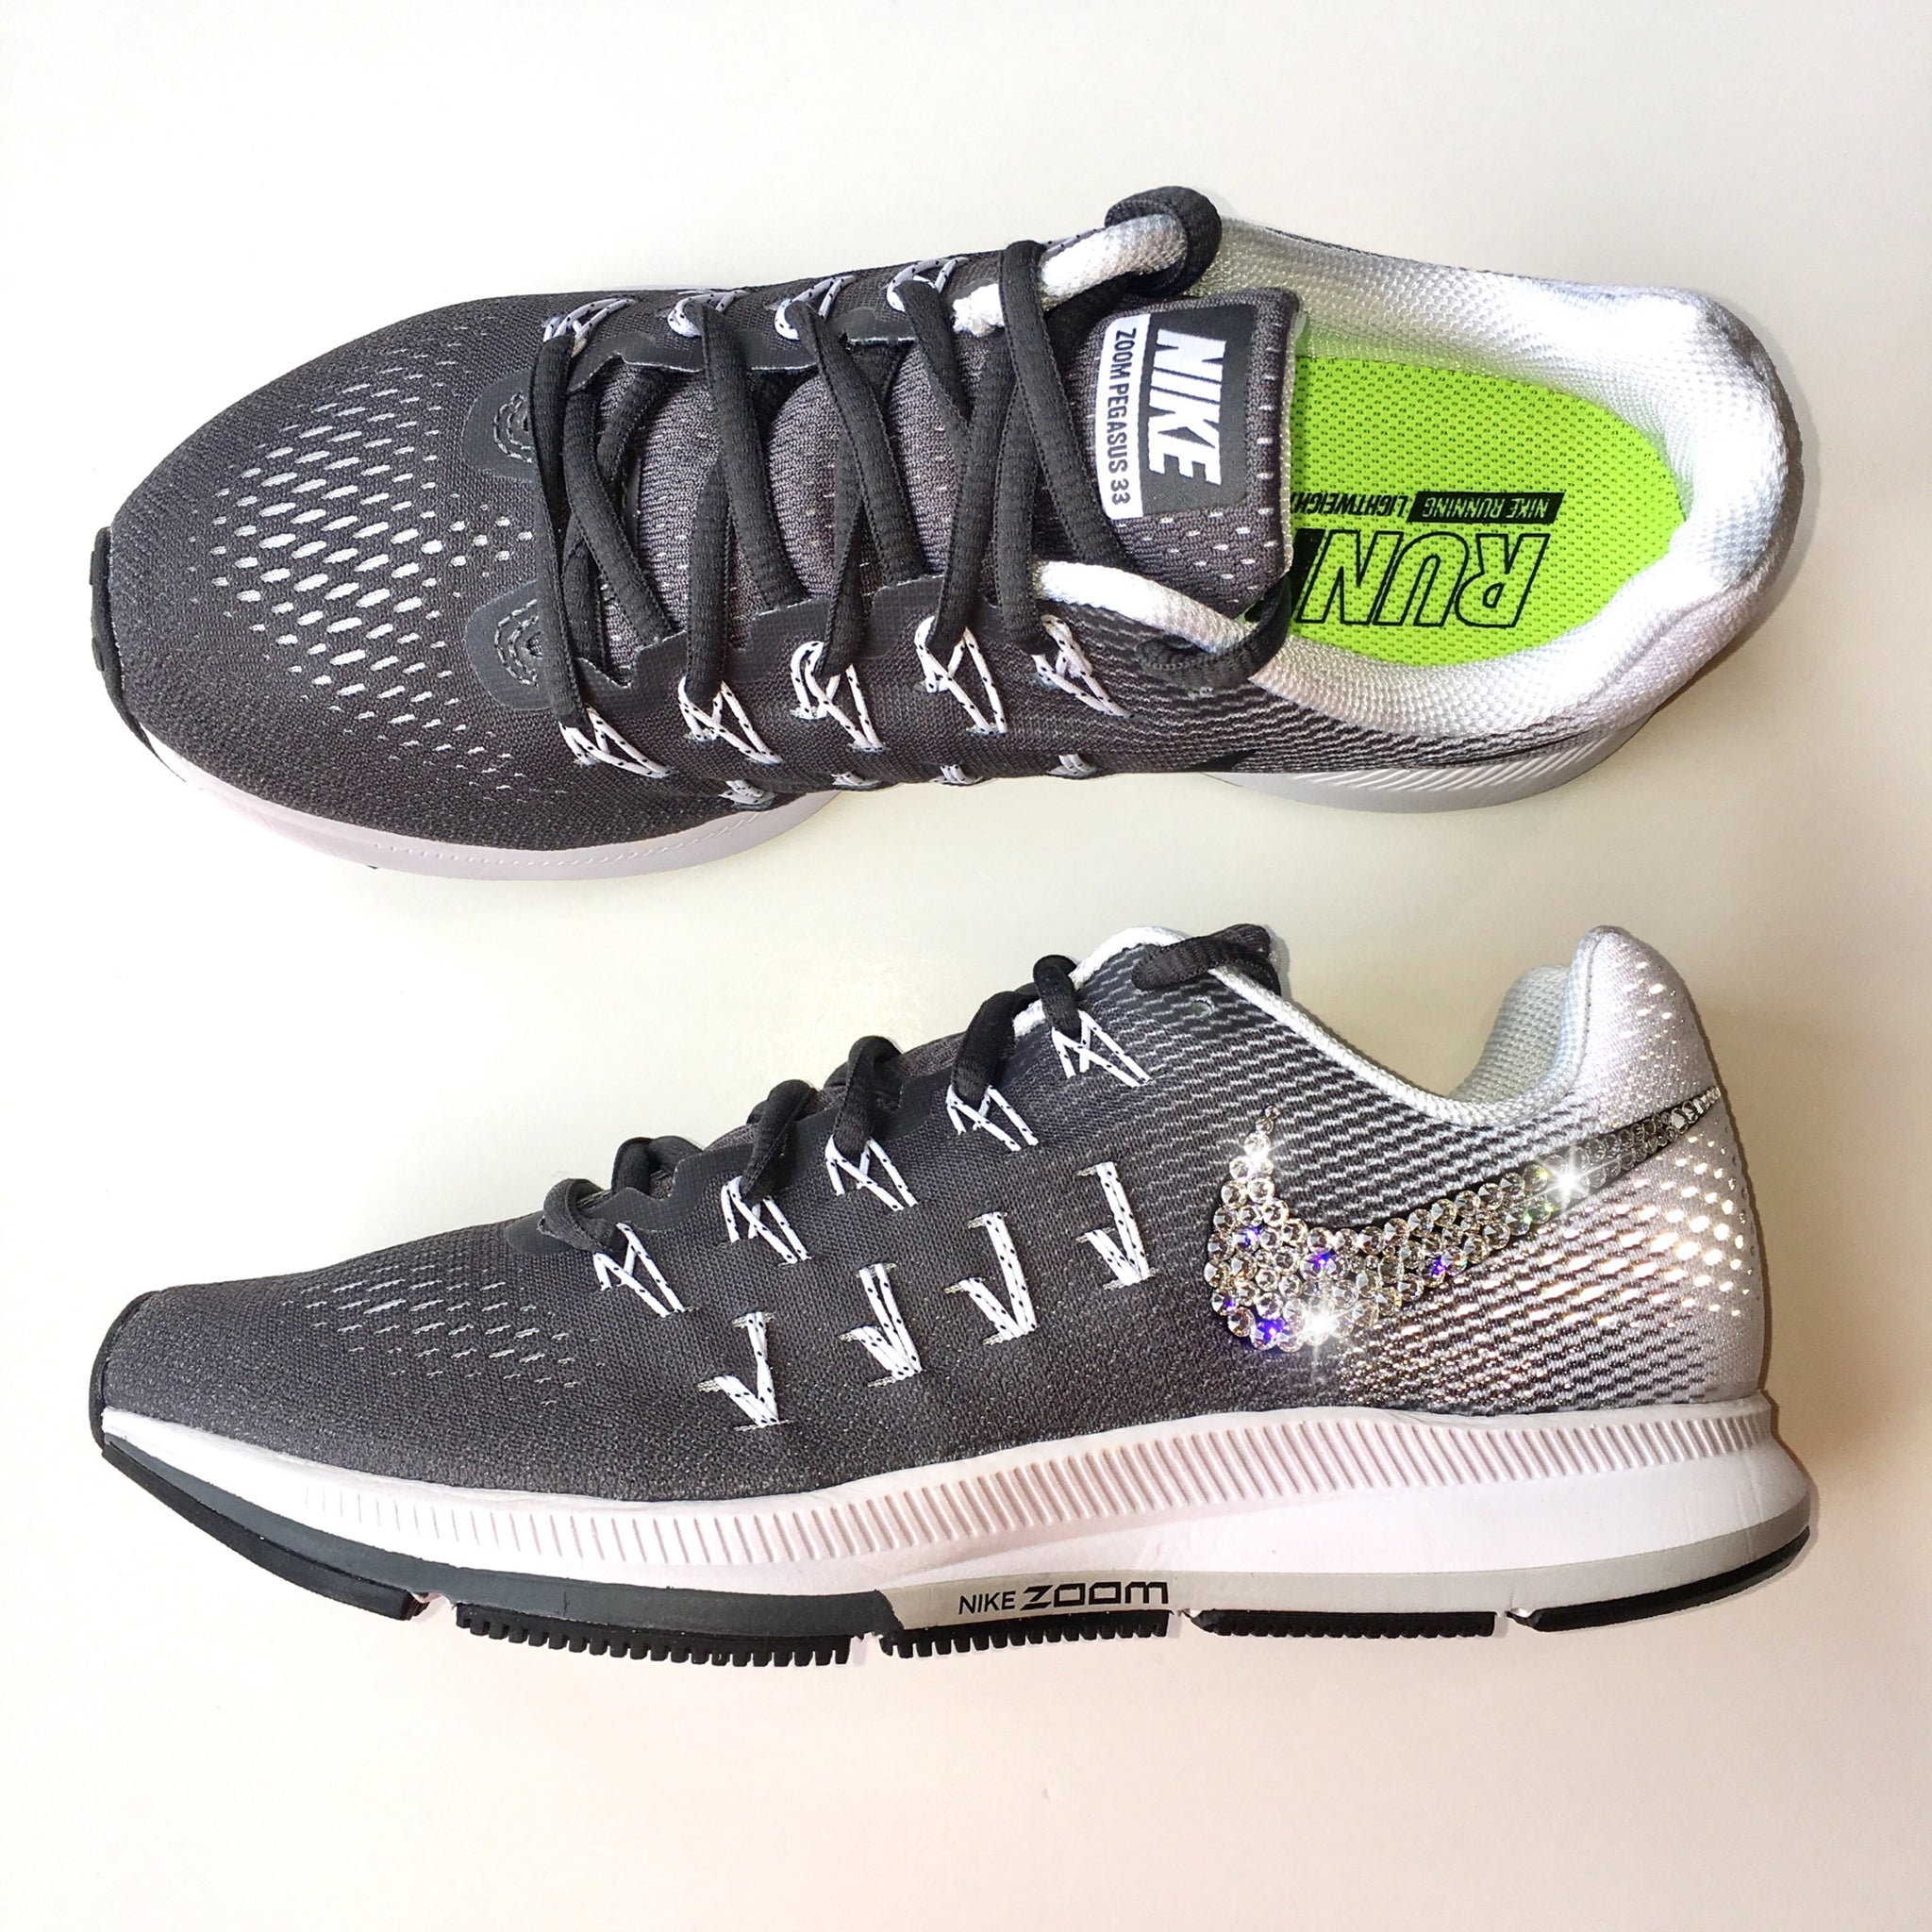 ... Bling Nike Air Zoom Pegasus 33 Shoes with Swarovski Crystals   Dark  Grey   Bedazzled w ... c31ec911b